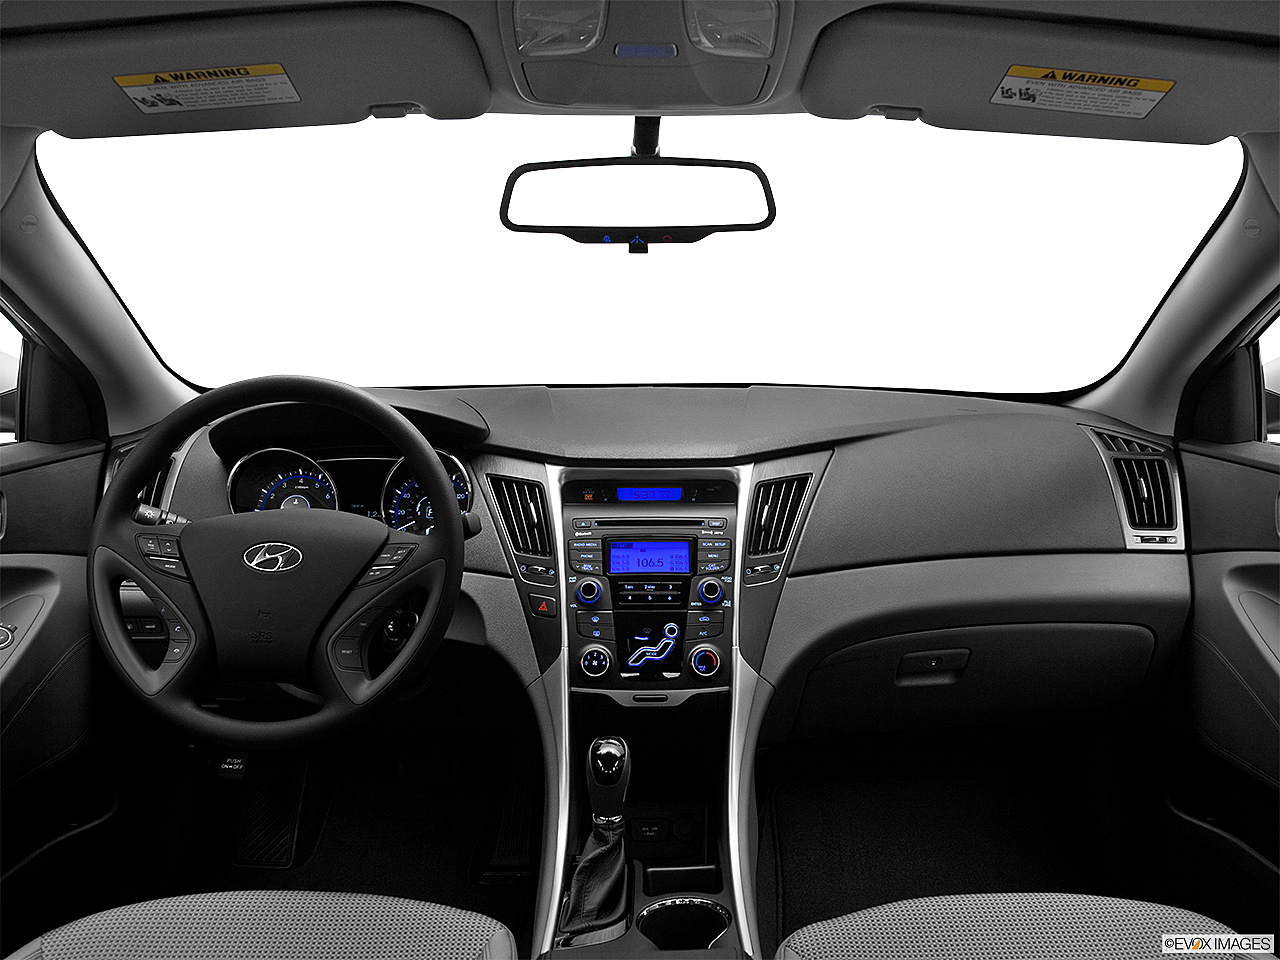 2012 Hyundai Sonata GLS Pzev, Centered Wide Dash Shot